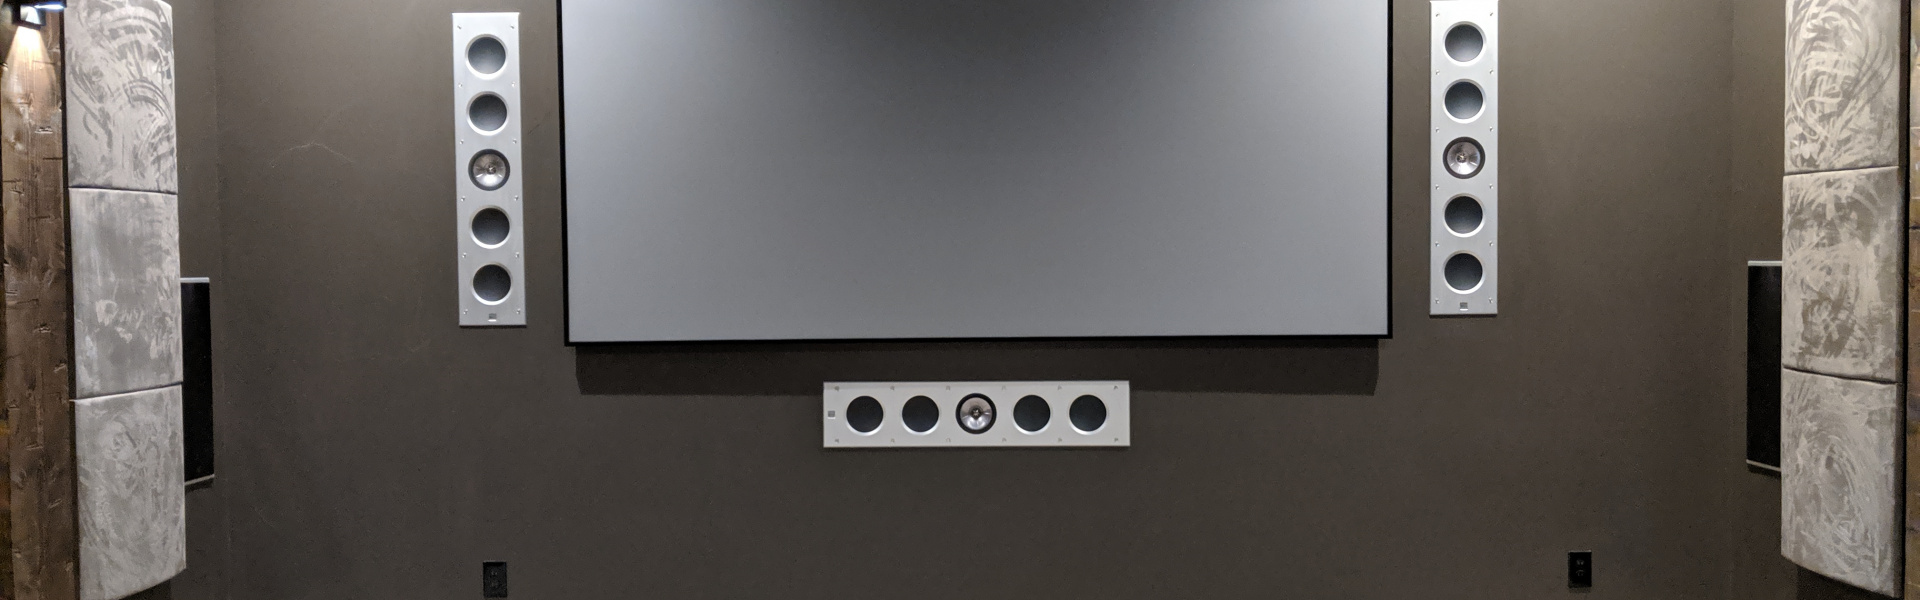 Smart home installation by Harmonic Series for Loveland